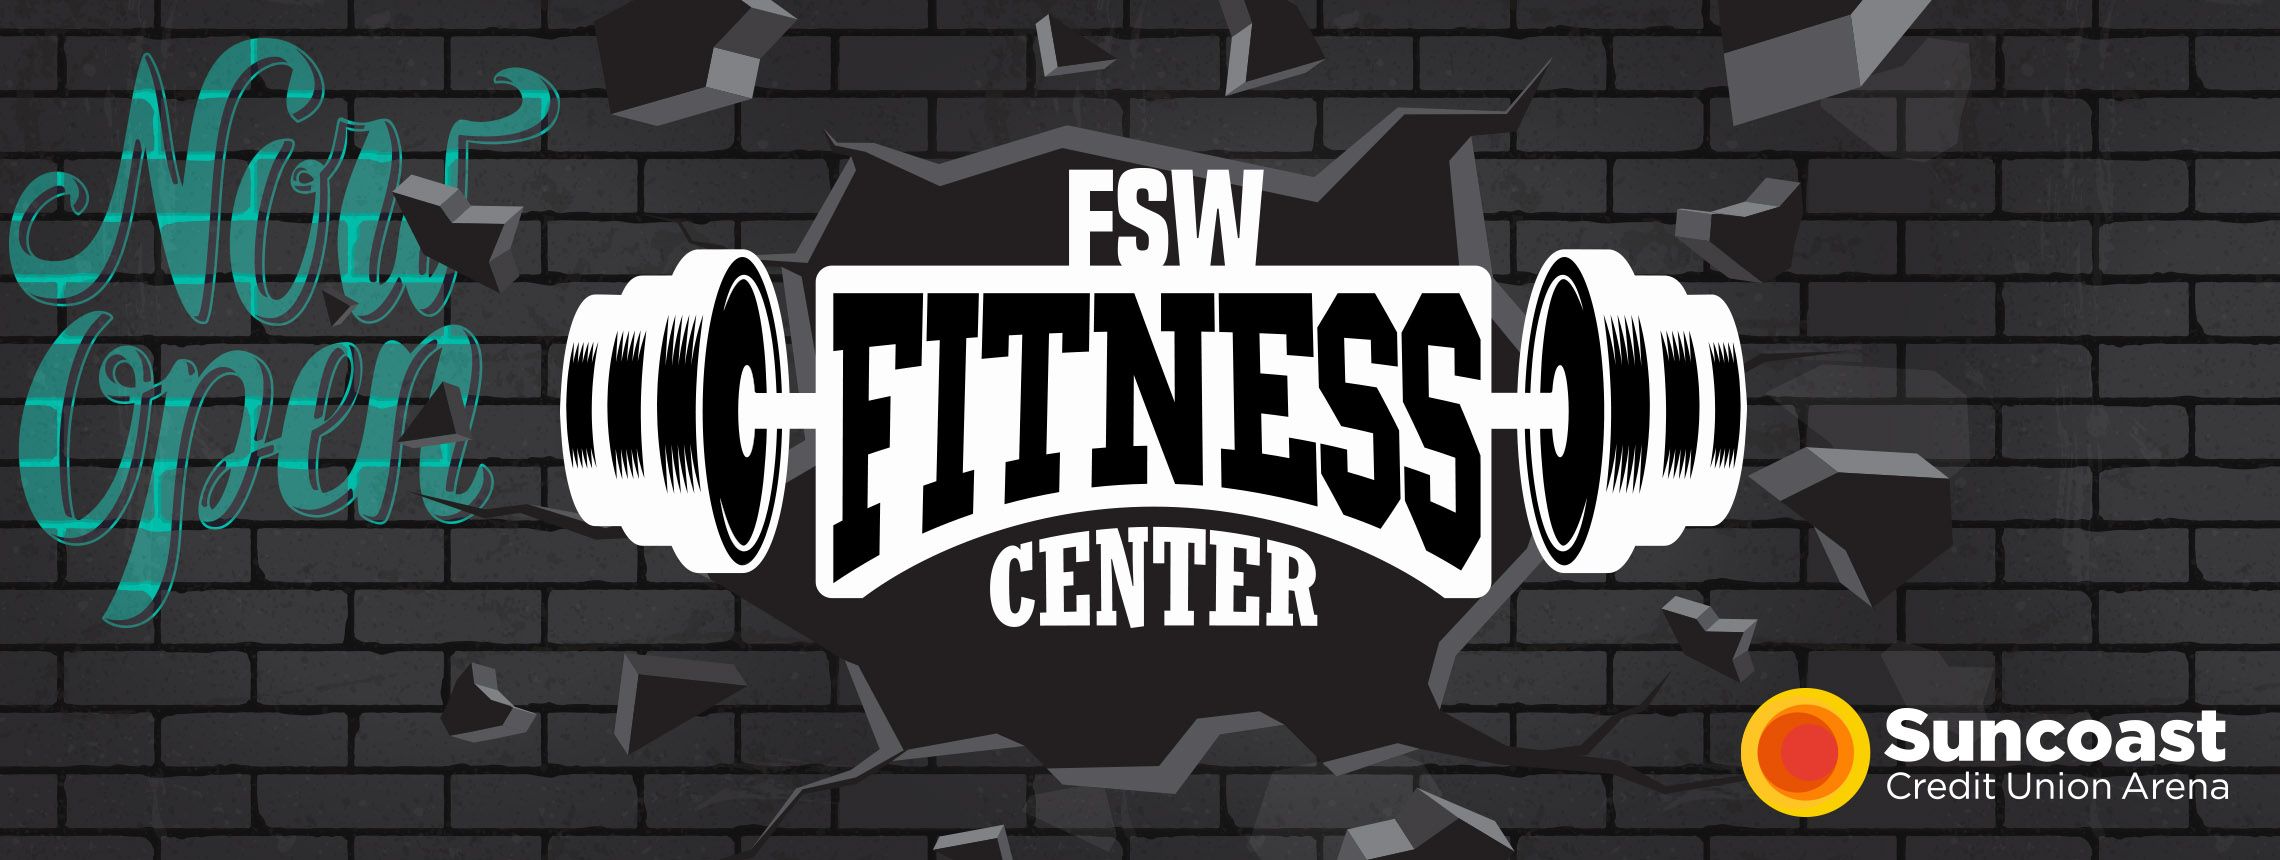 Fitness Center now open!